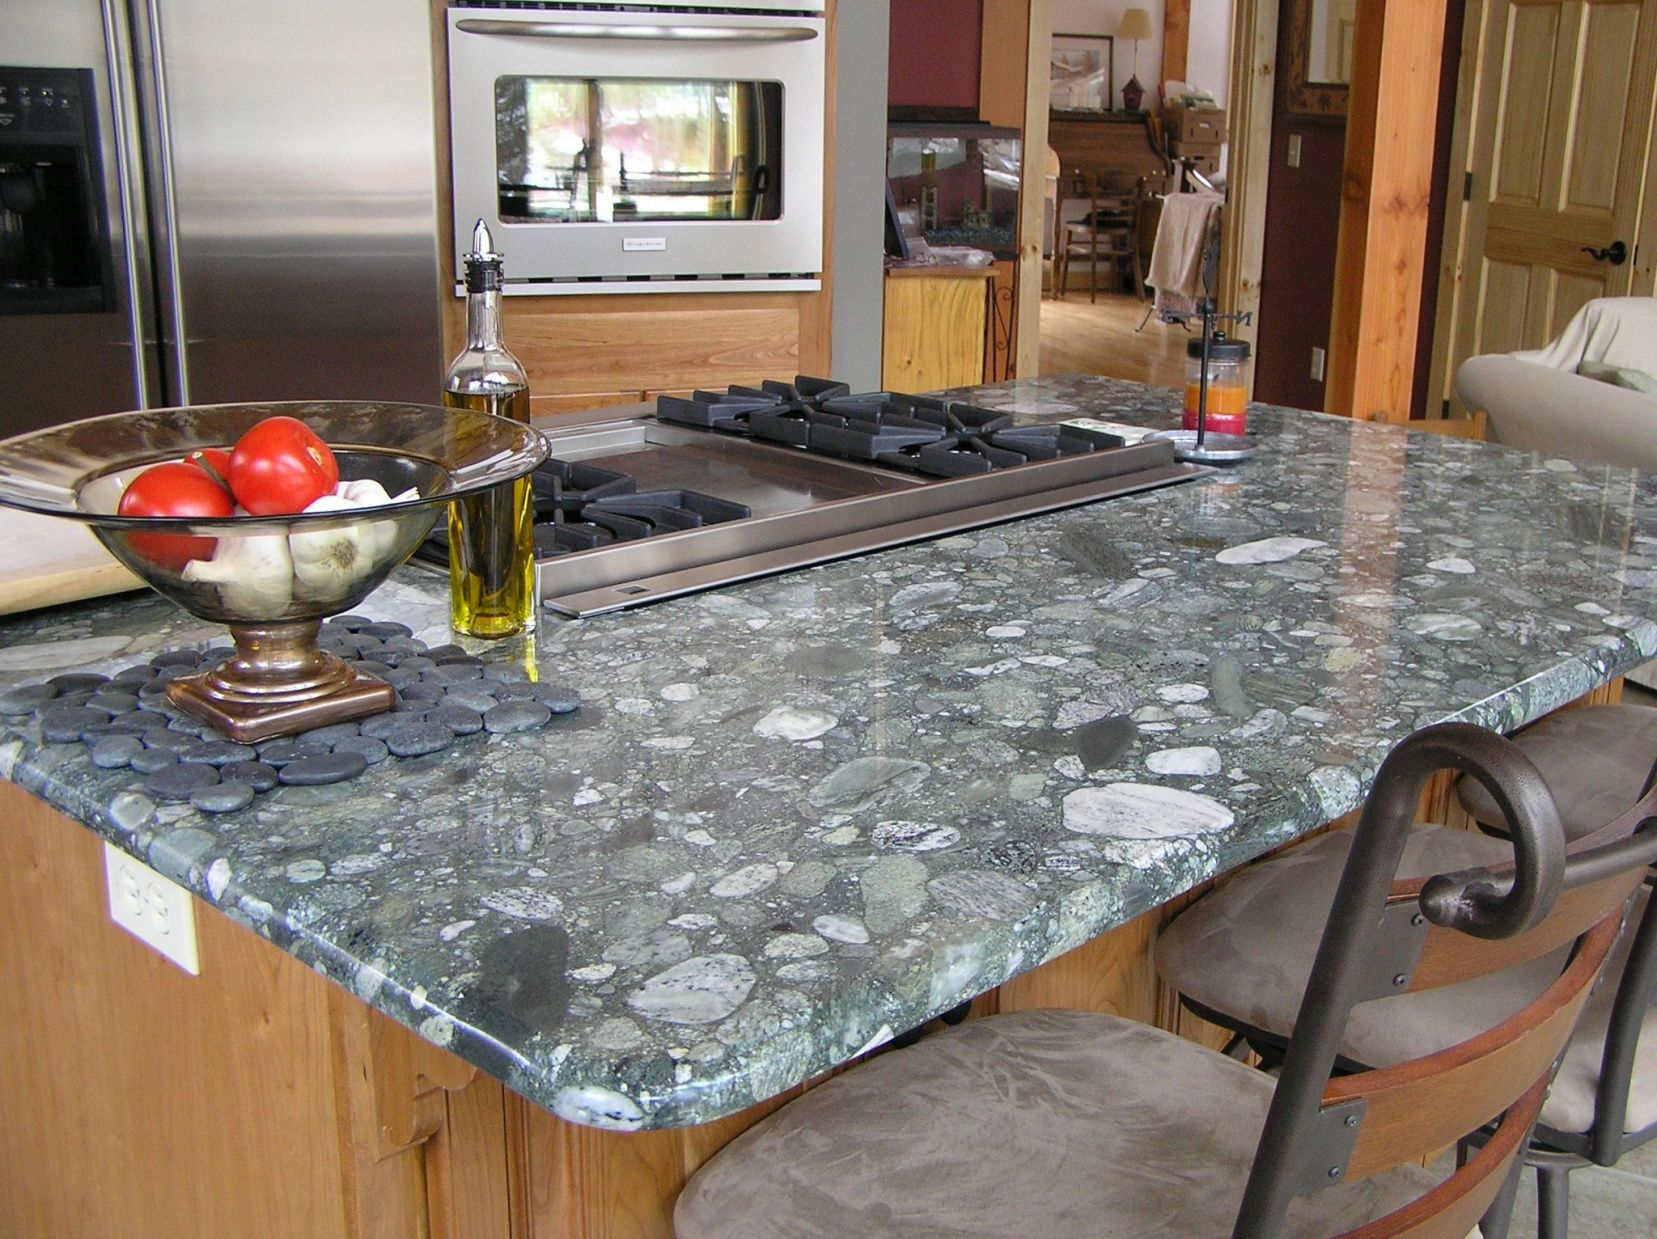 77 Granite Vs Laminate Countertops Cost Kitchen Remodeling Ideas On A Small Budget Check More At Http